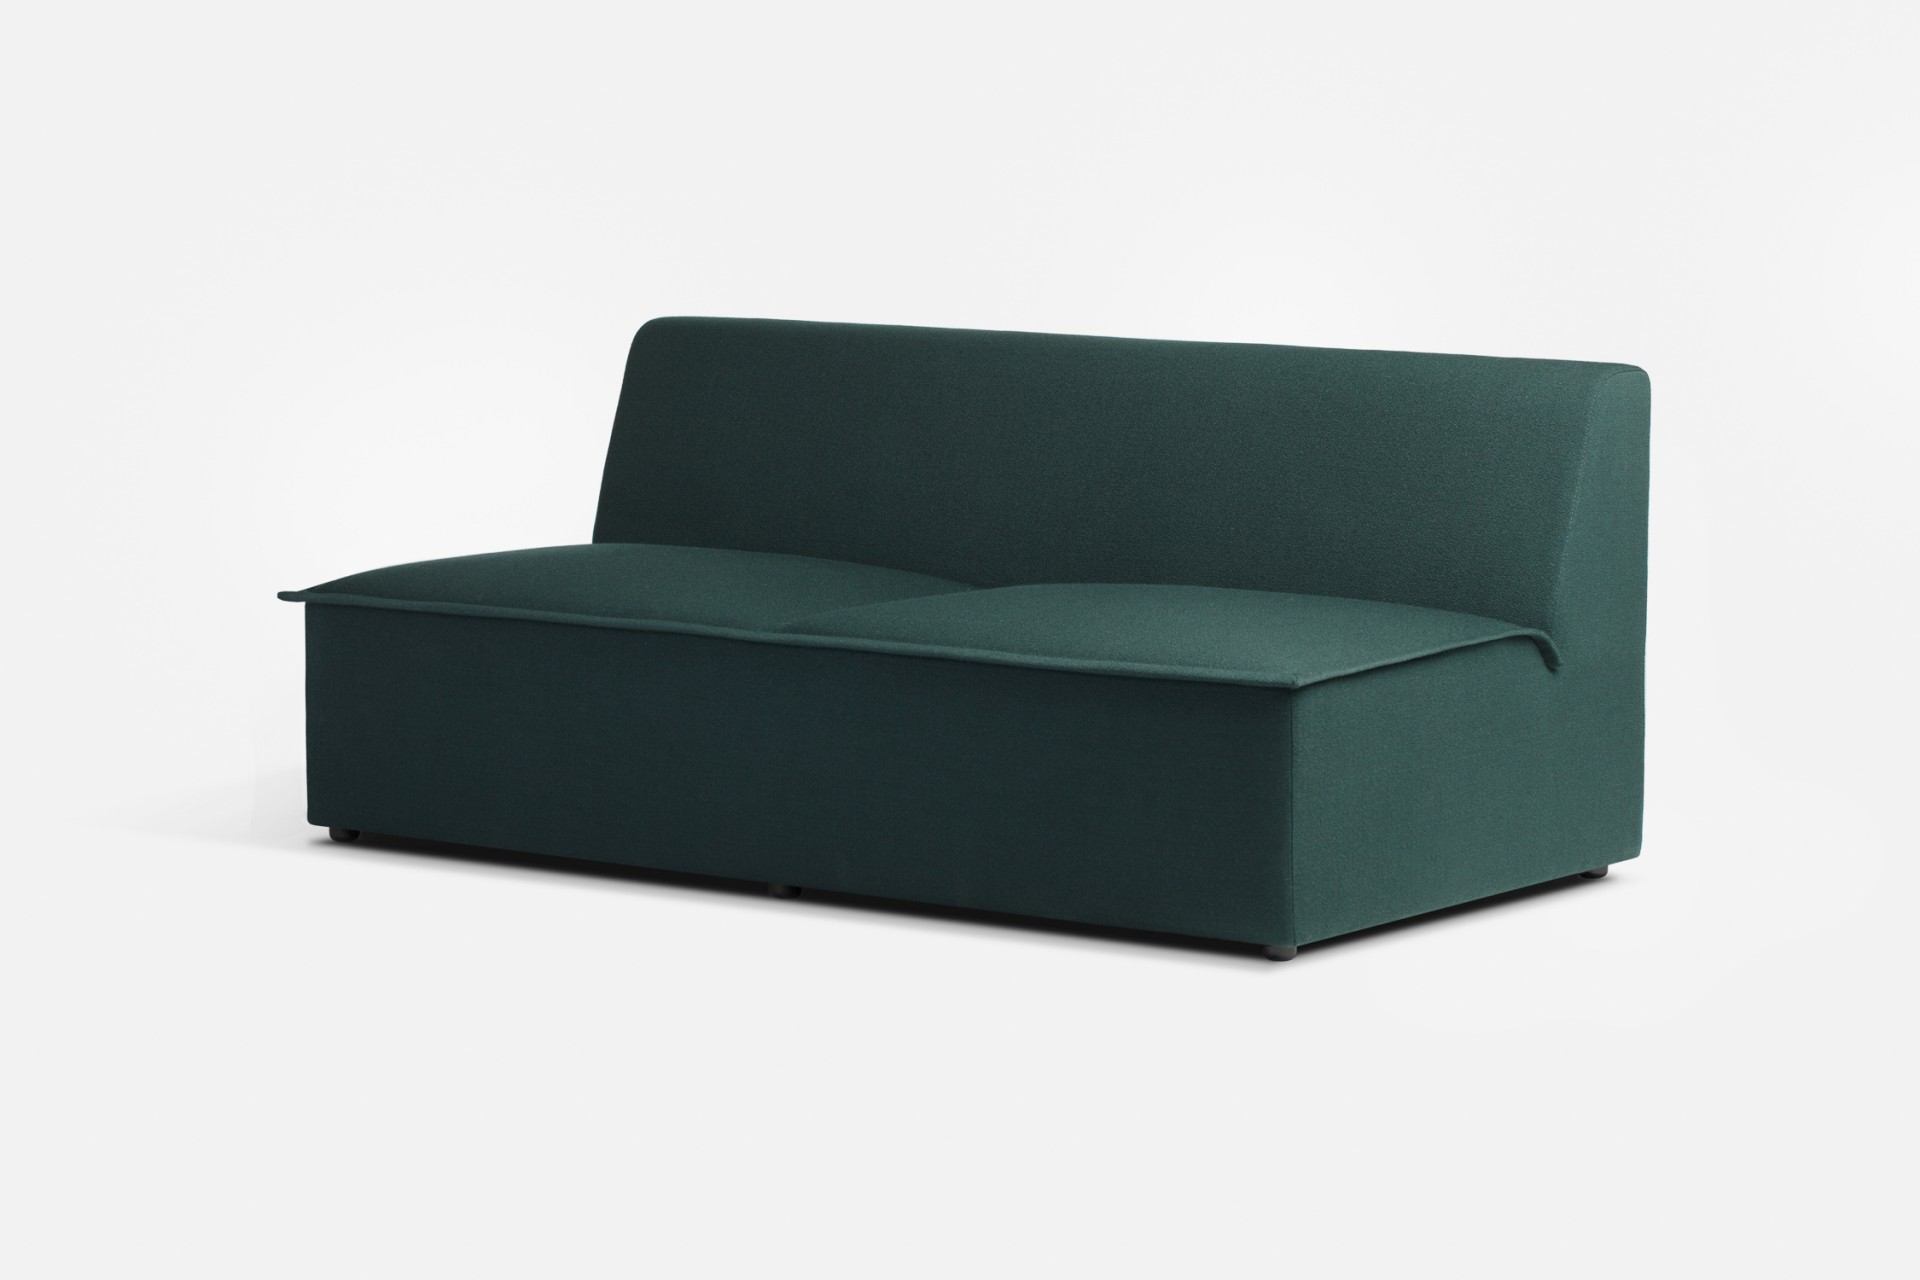 Sofa With Foam Seats Hood Sofa Sofa Designed By Geckeler Michels Common Seating